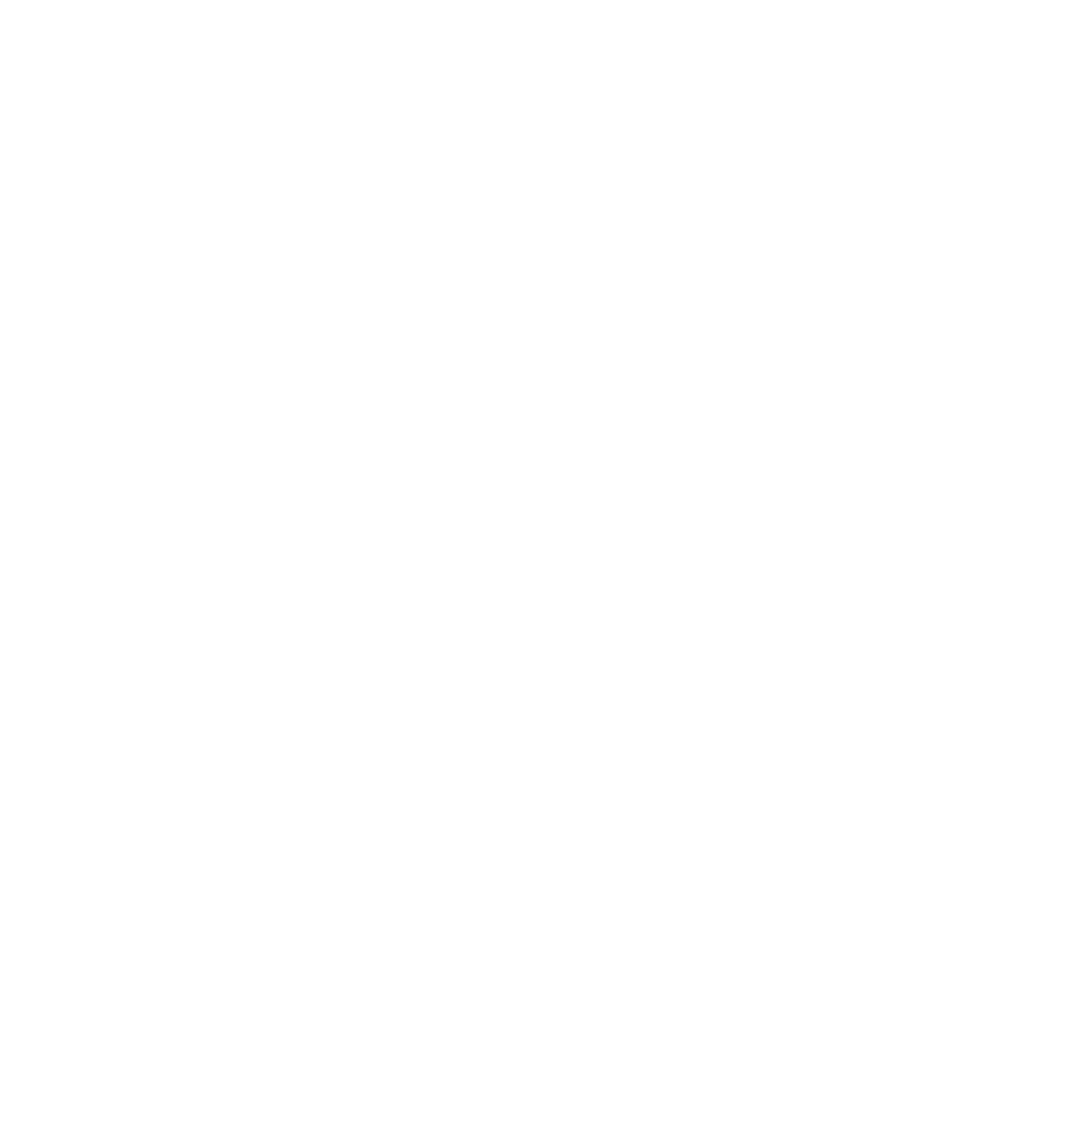 Smartay Education